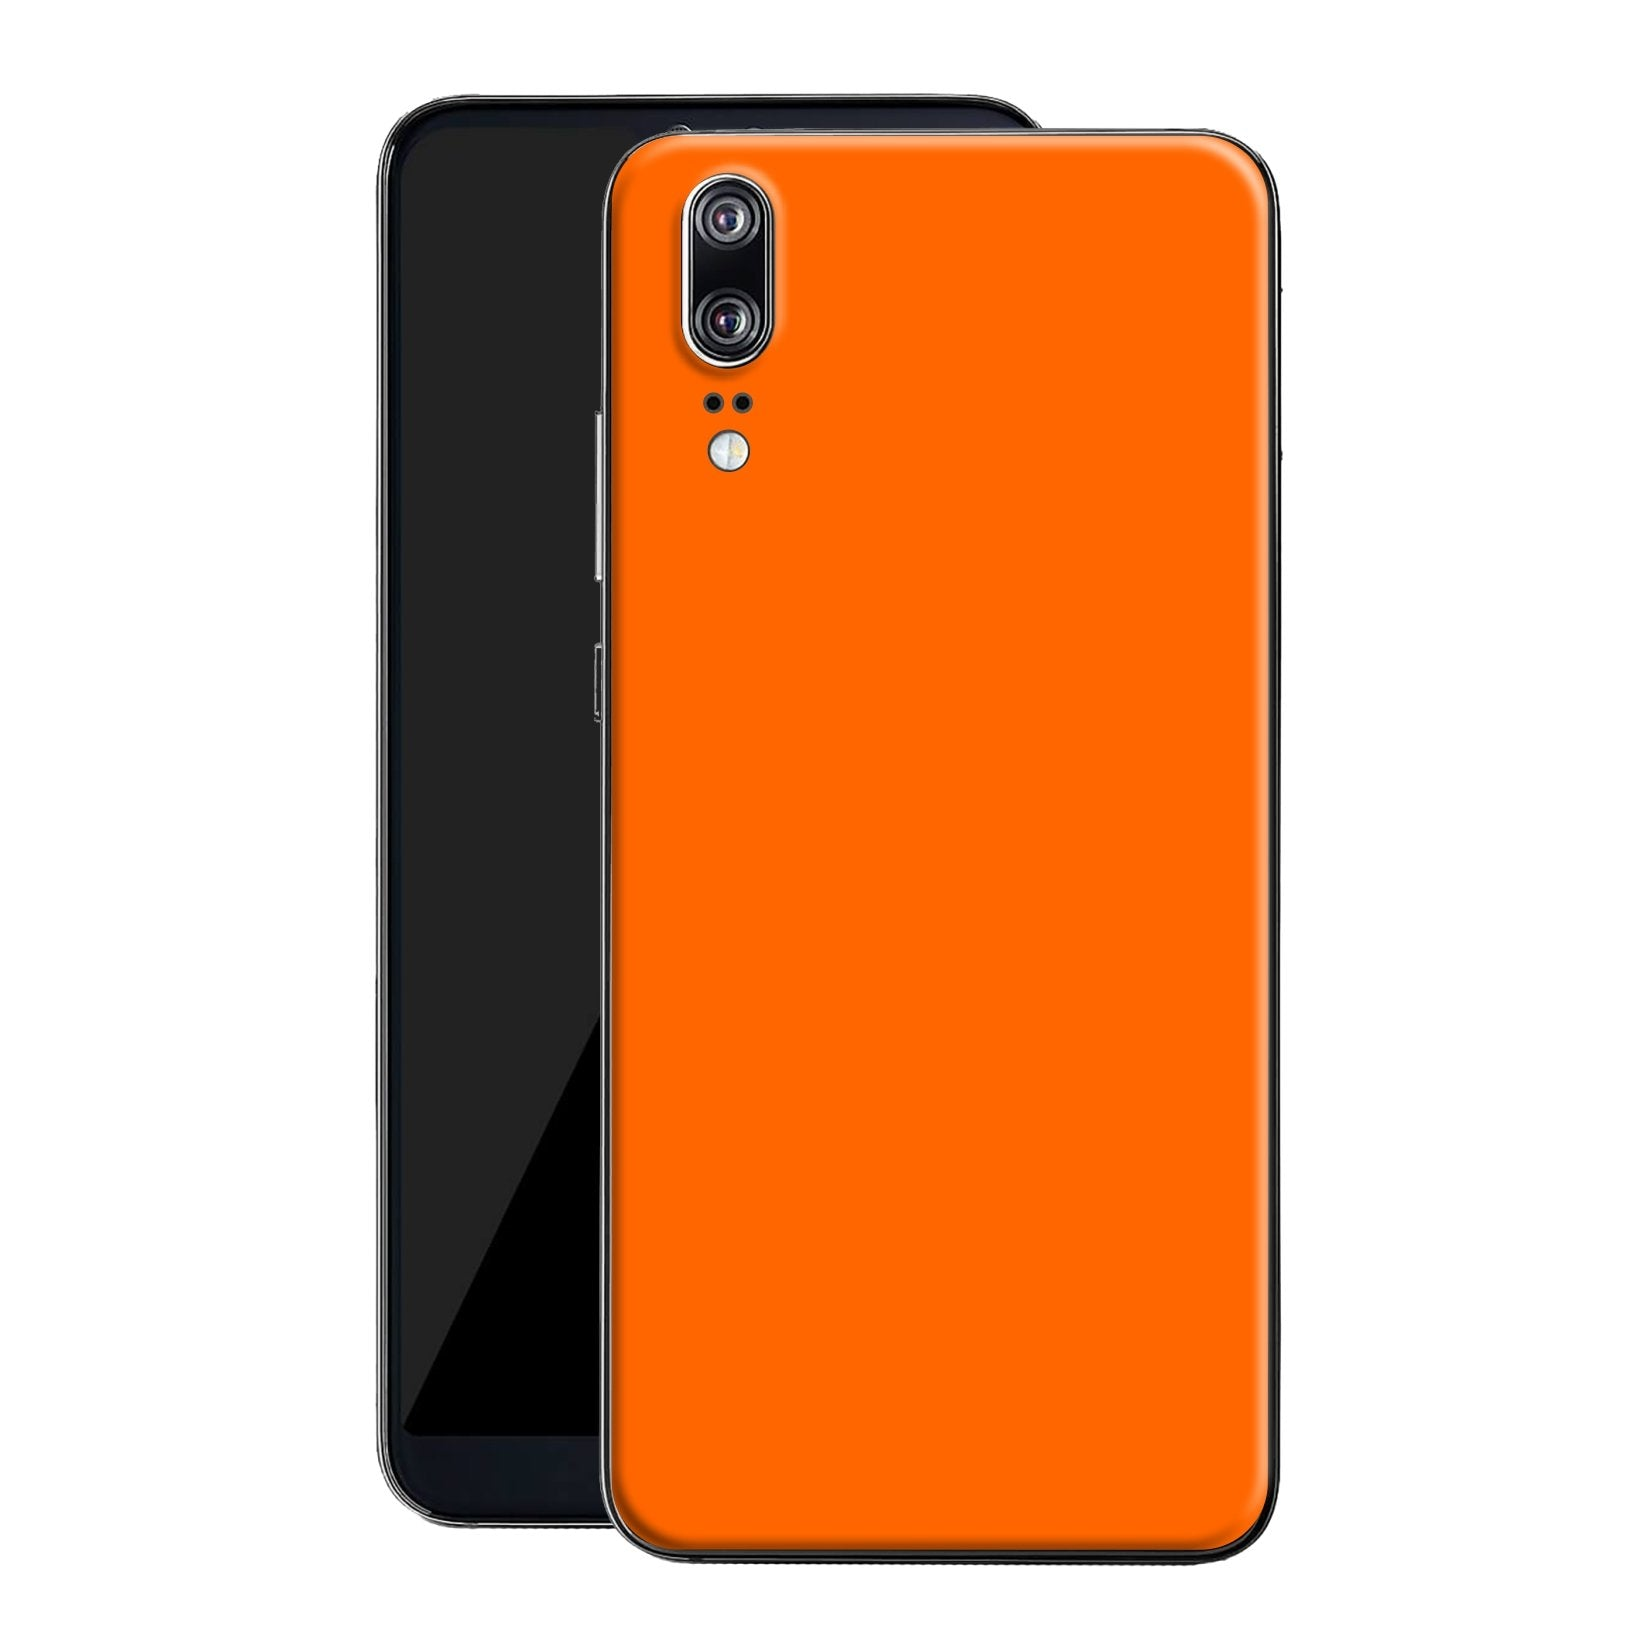 Huawei P20 Orange Matt Skin, Decal, Wrap, Protector, Cover by EasySkinz | EasySkinz.com